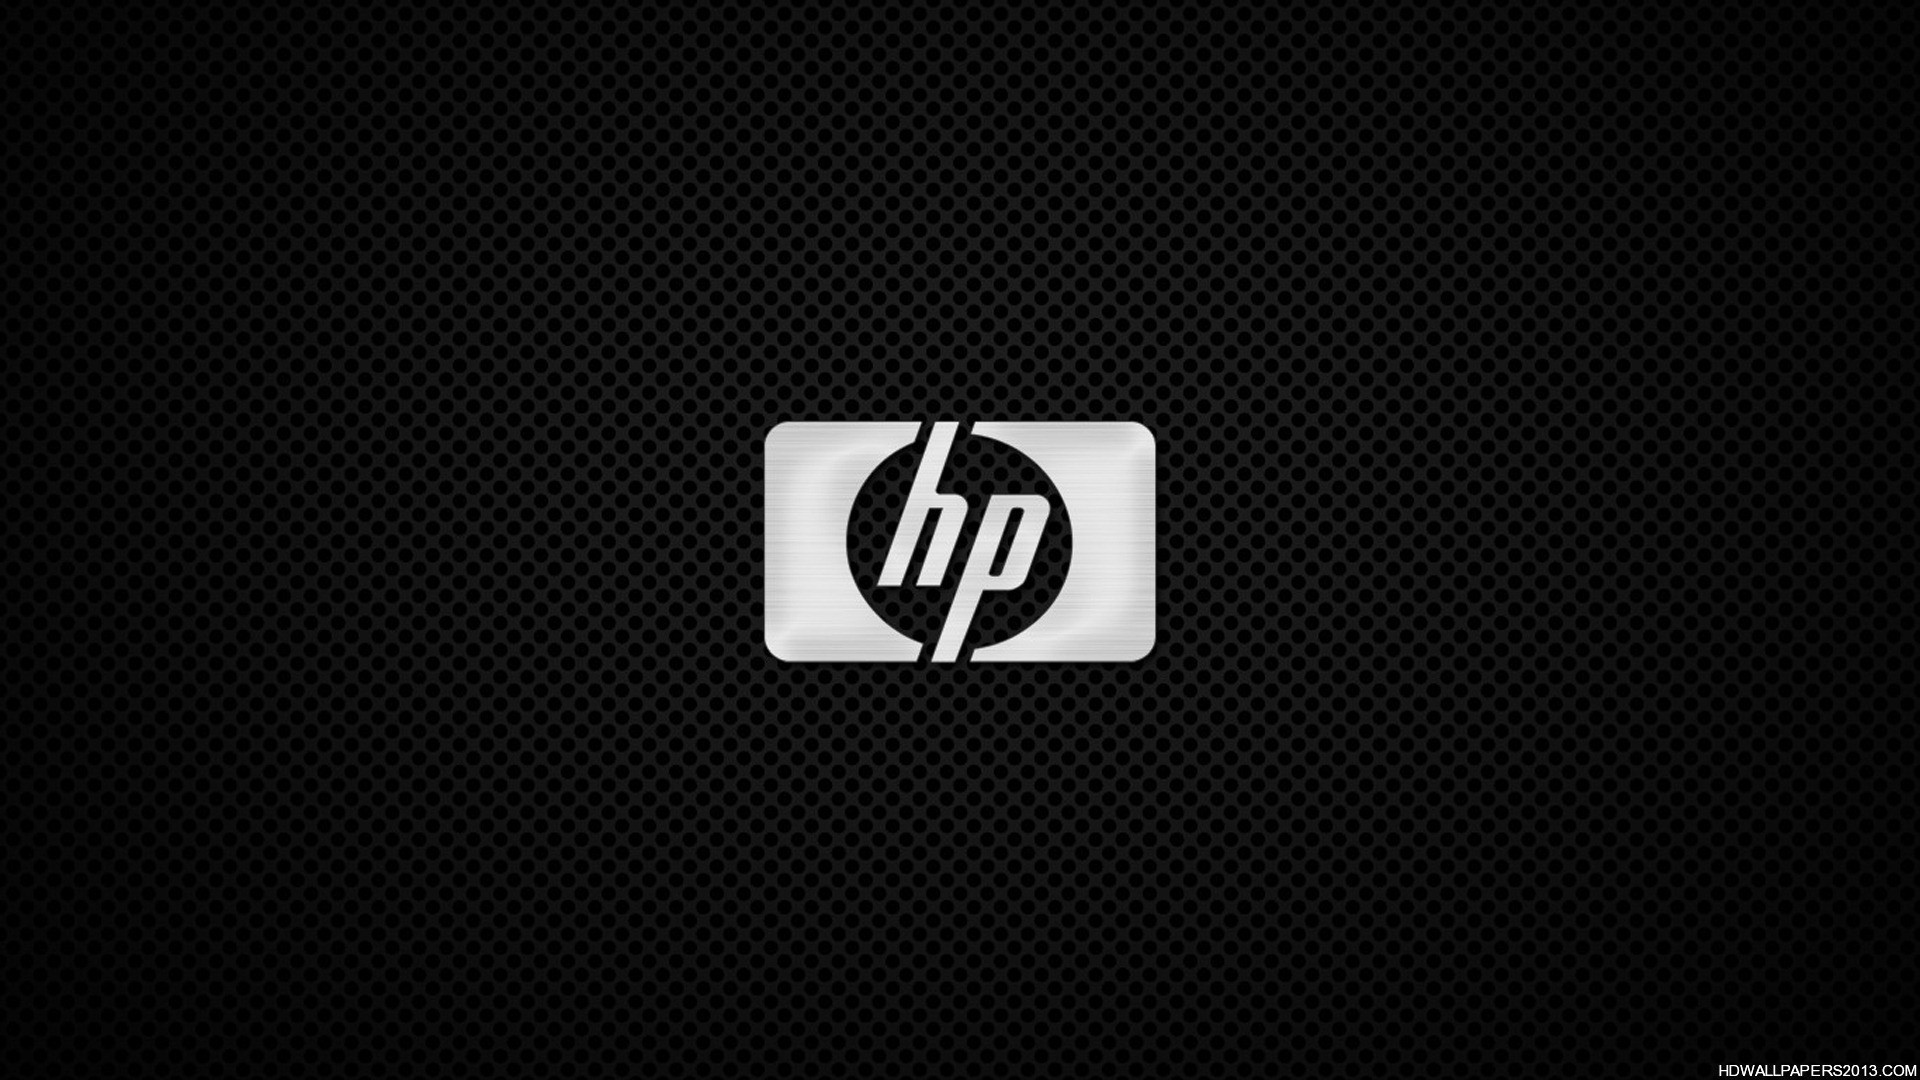 HP Screensavers and Wallpaper  59  images  1920x1080 hp wallpaper for laptop hd wallpapers hp wallpaper for laptop hd